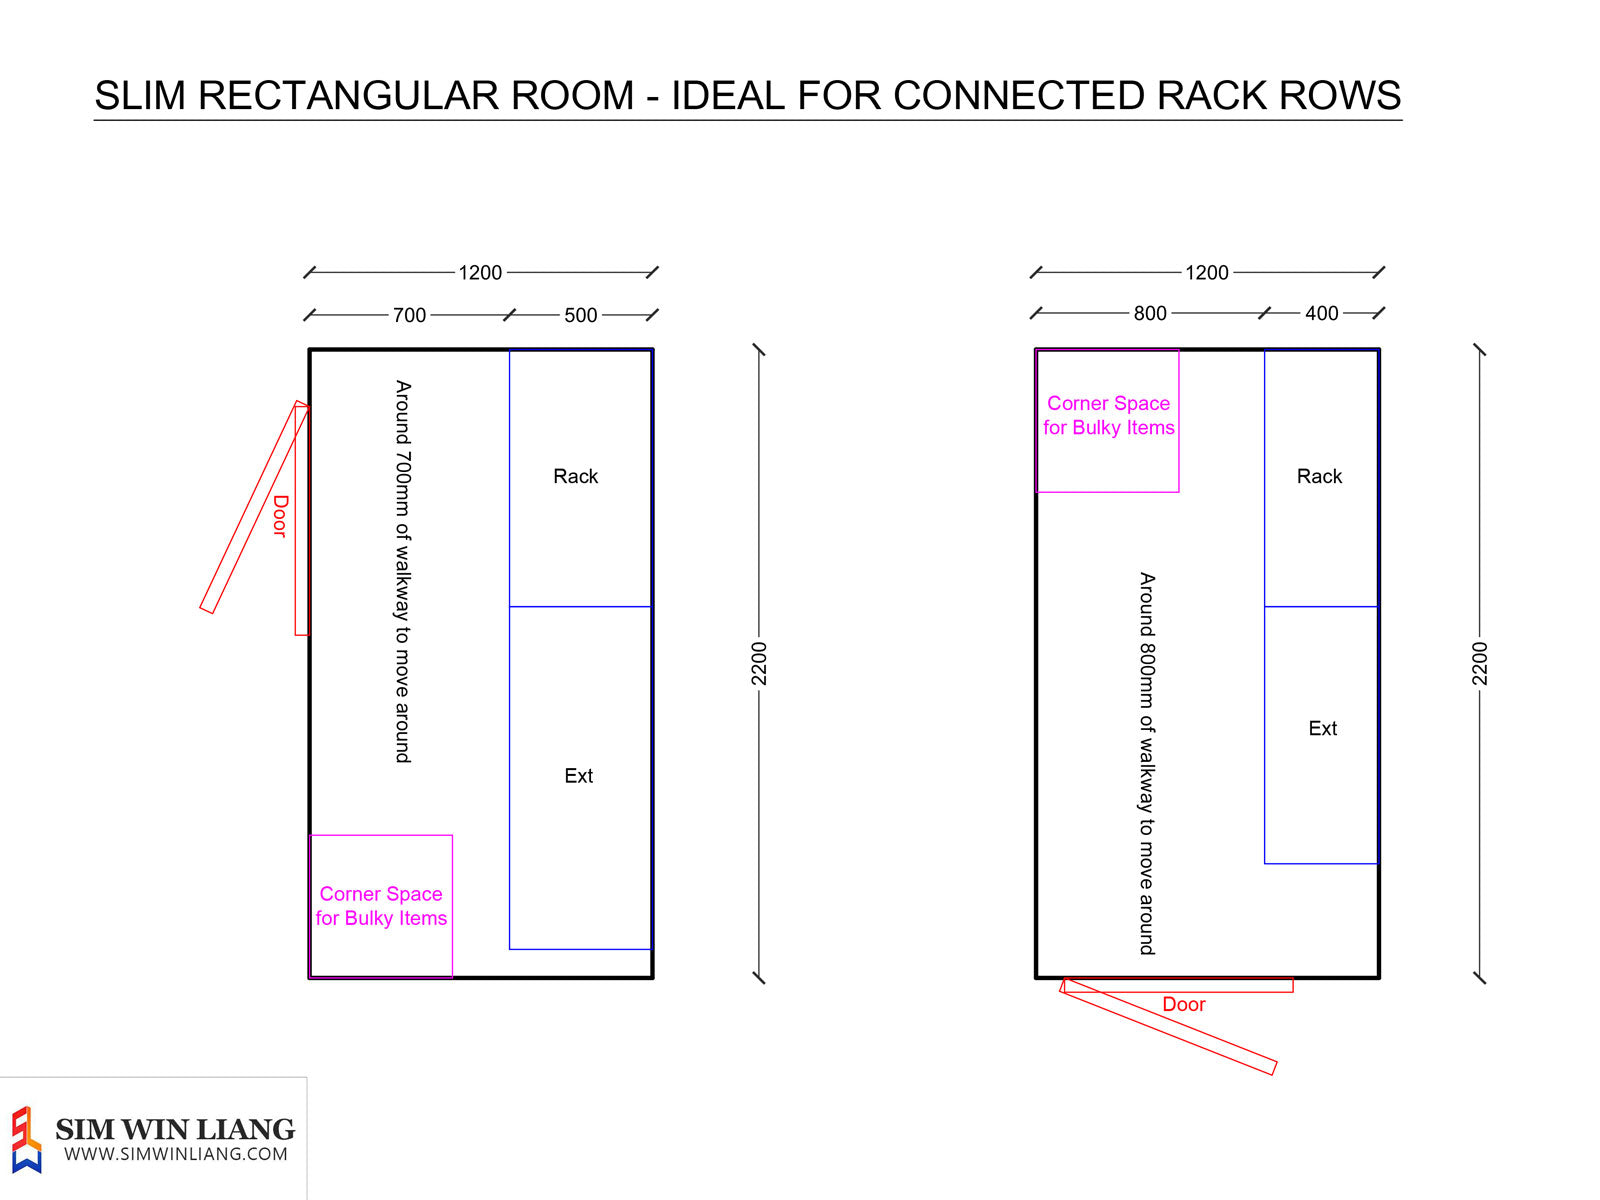 Recommended Storage Rack Layout for Slim Rectangular Storeroom in Singapore 2020 - SIM WIN LIANG